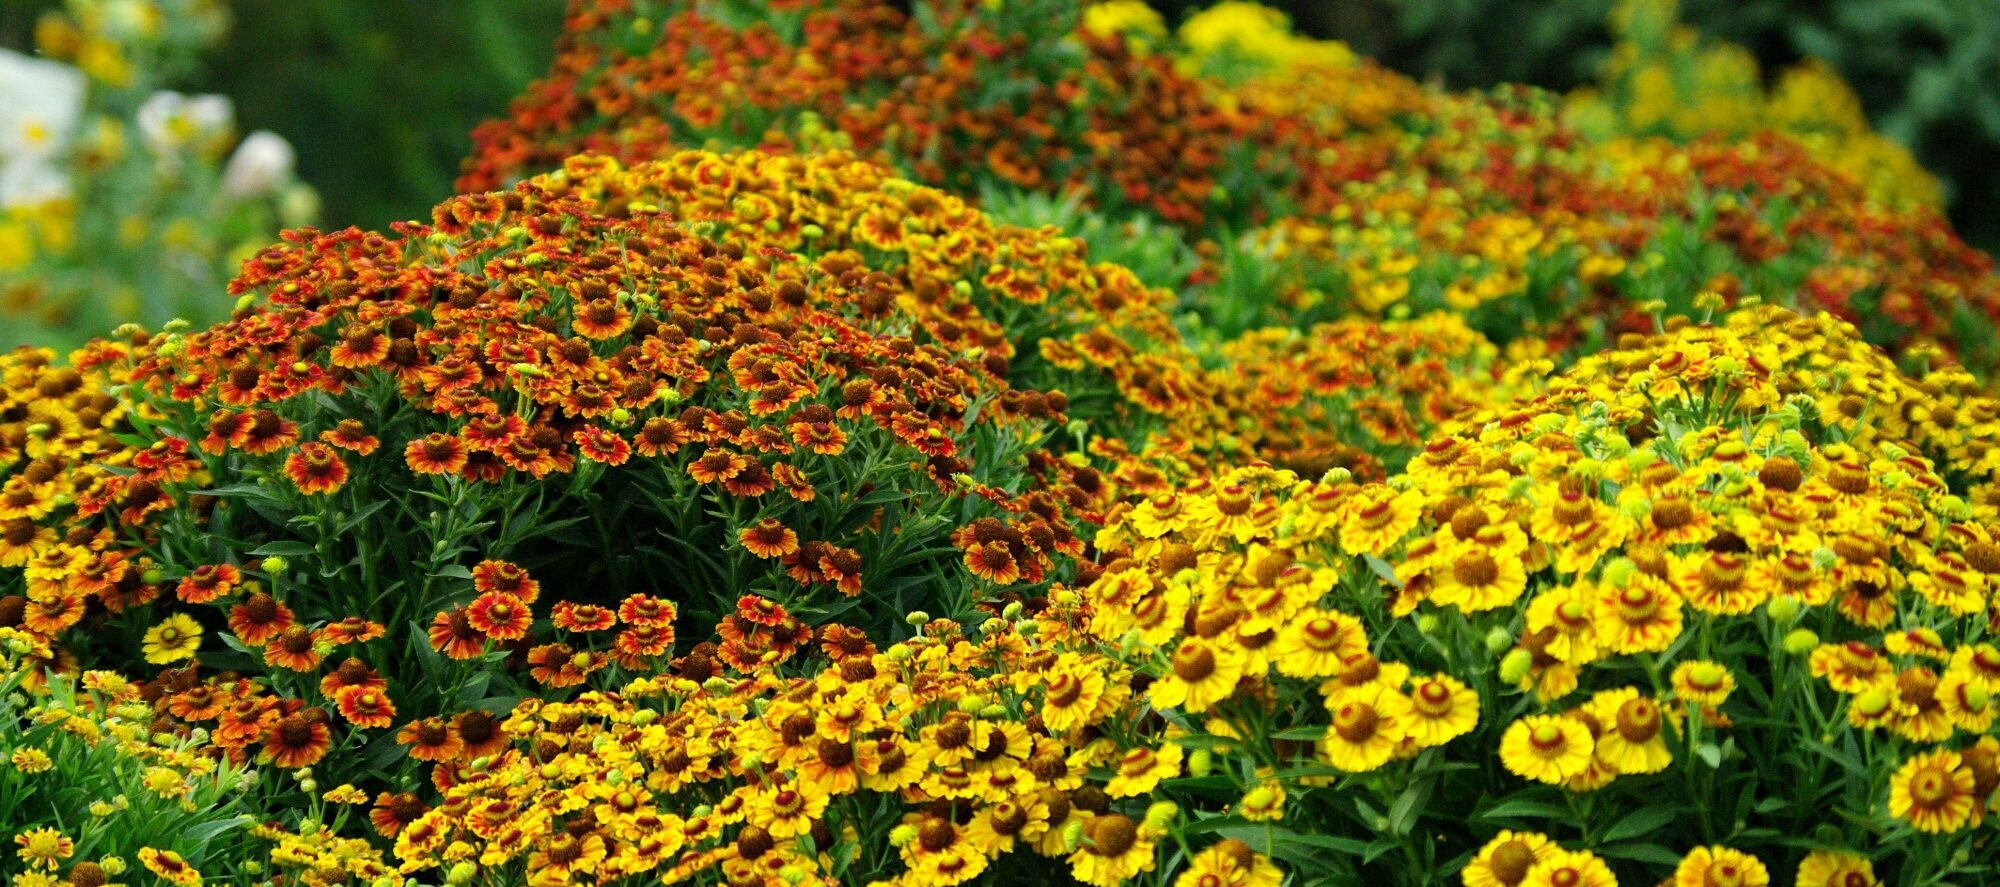 27 Fall Plants From Flowers To Trees For Bright Autumn Color